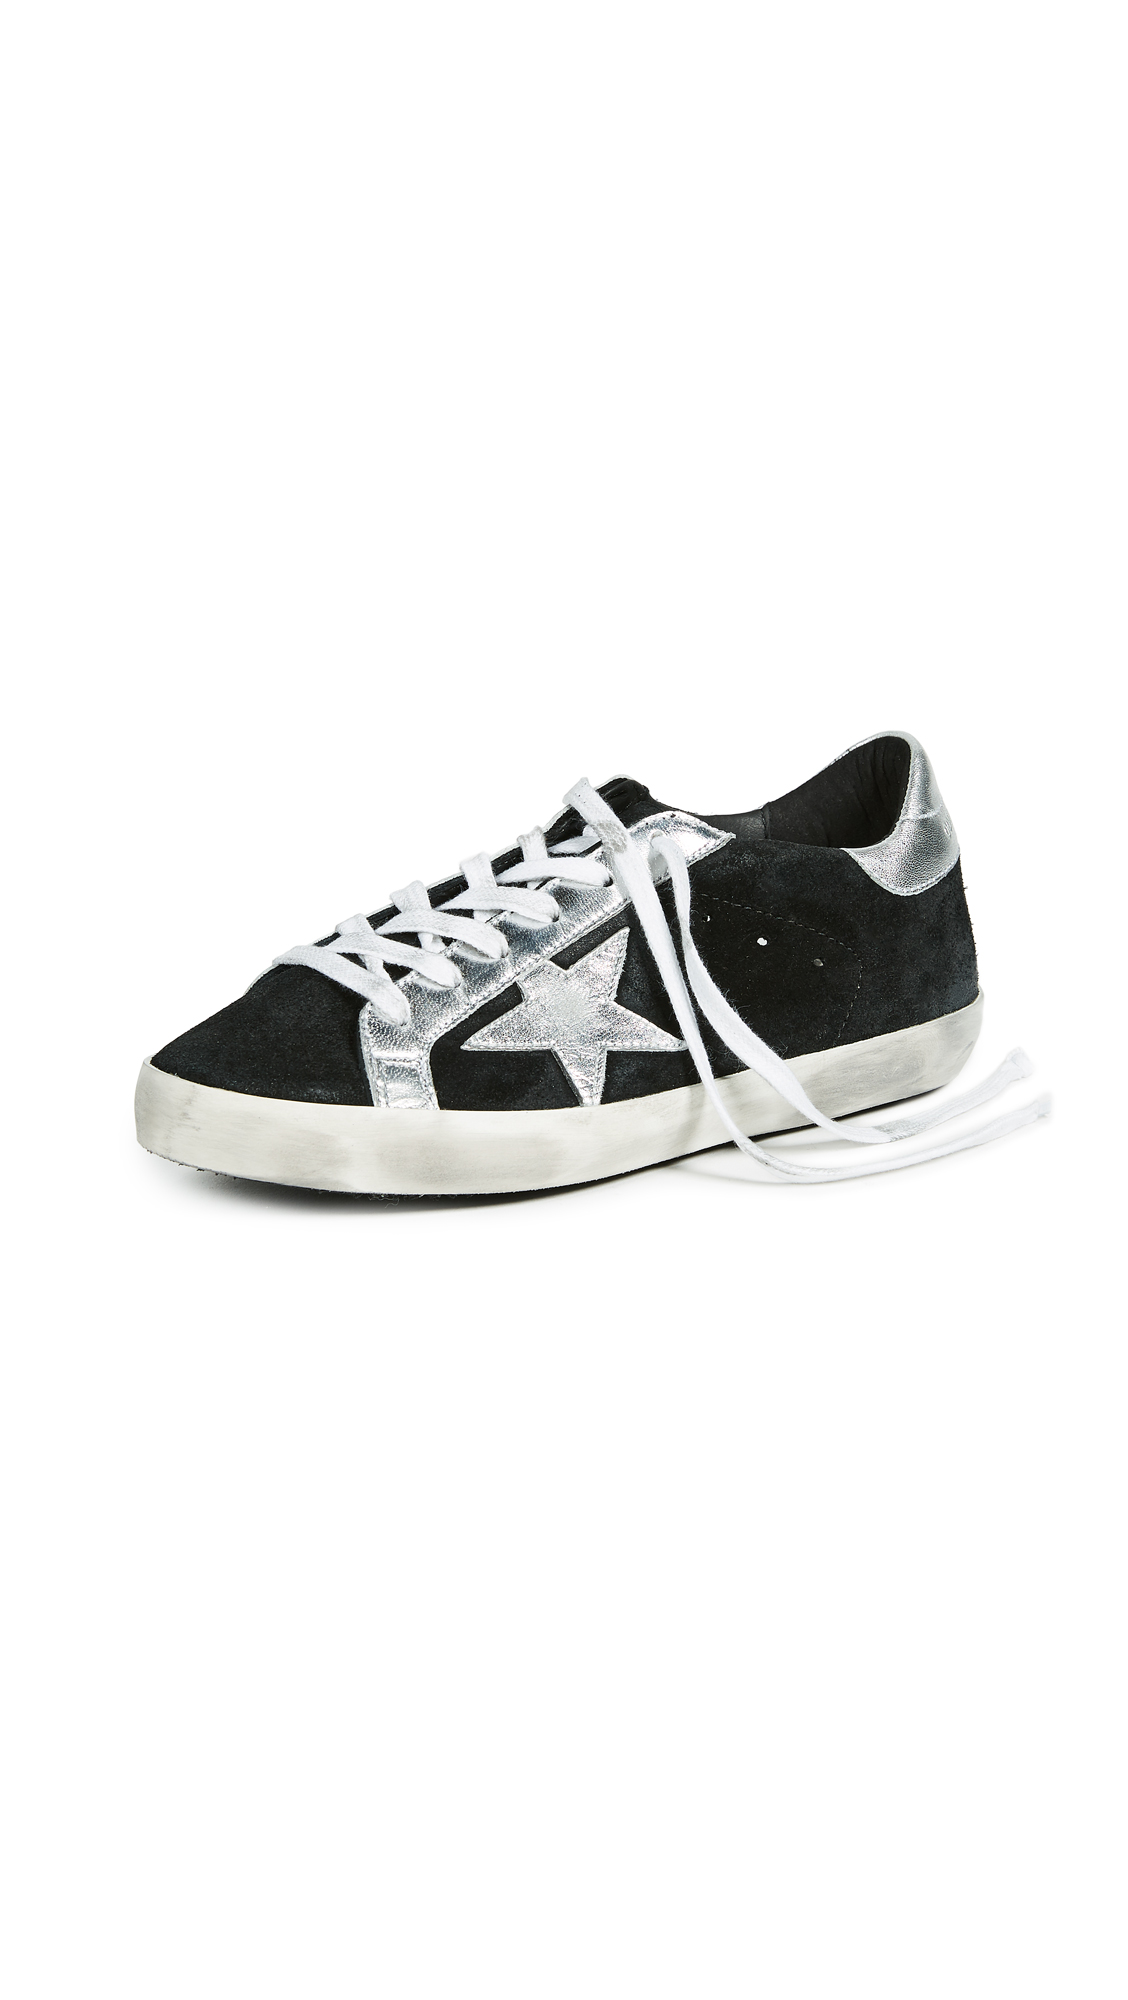 Golden Goose Superstar Sneakers - Black/Silver